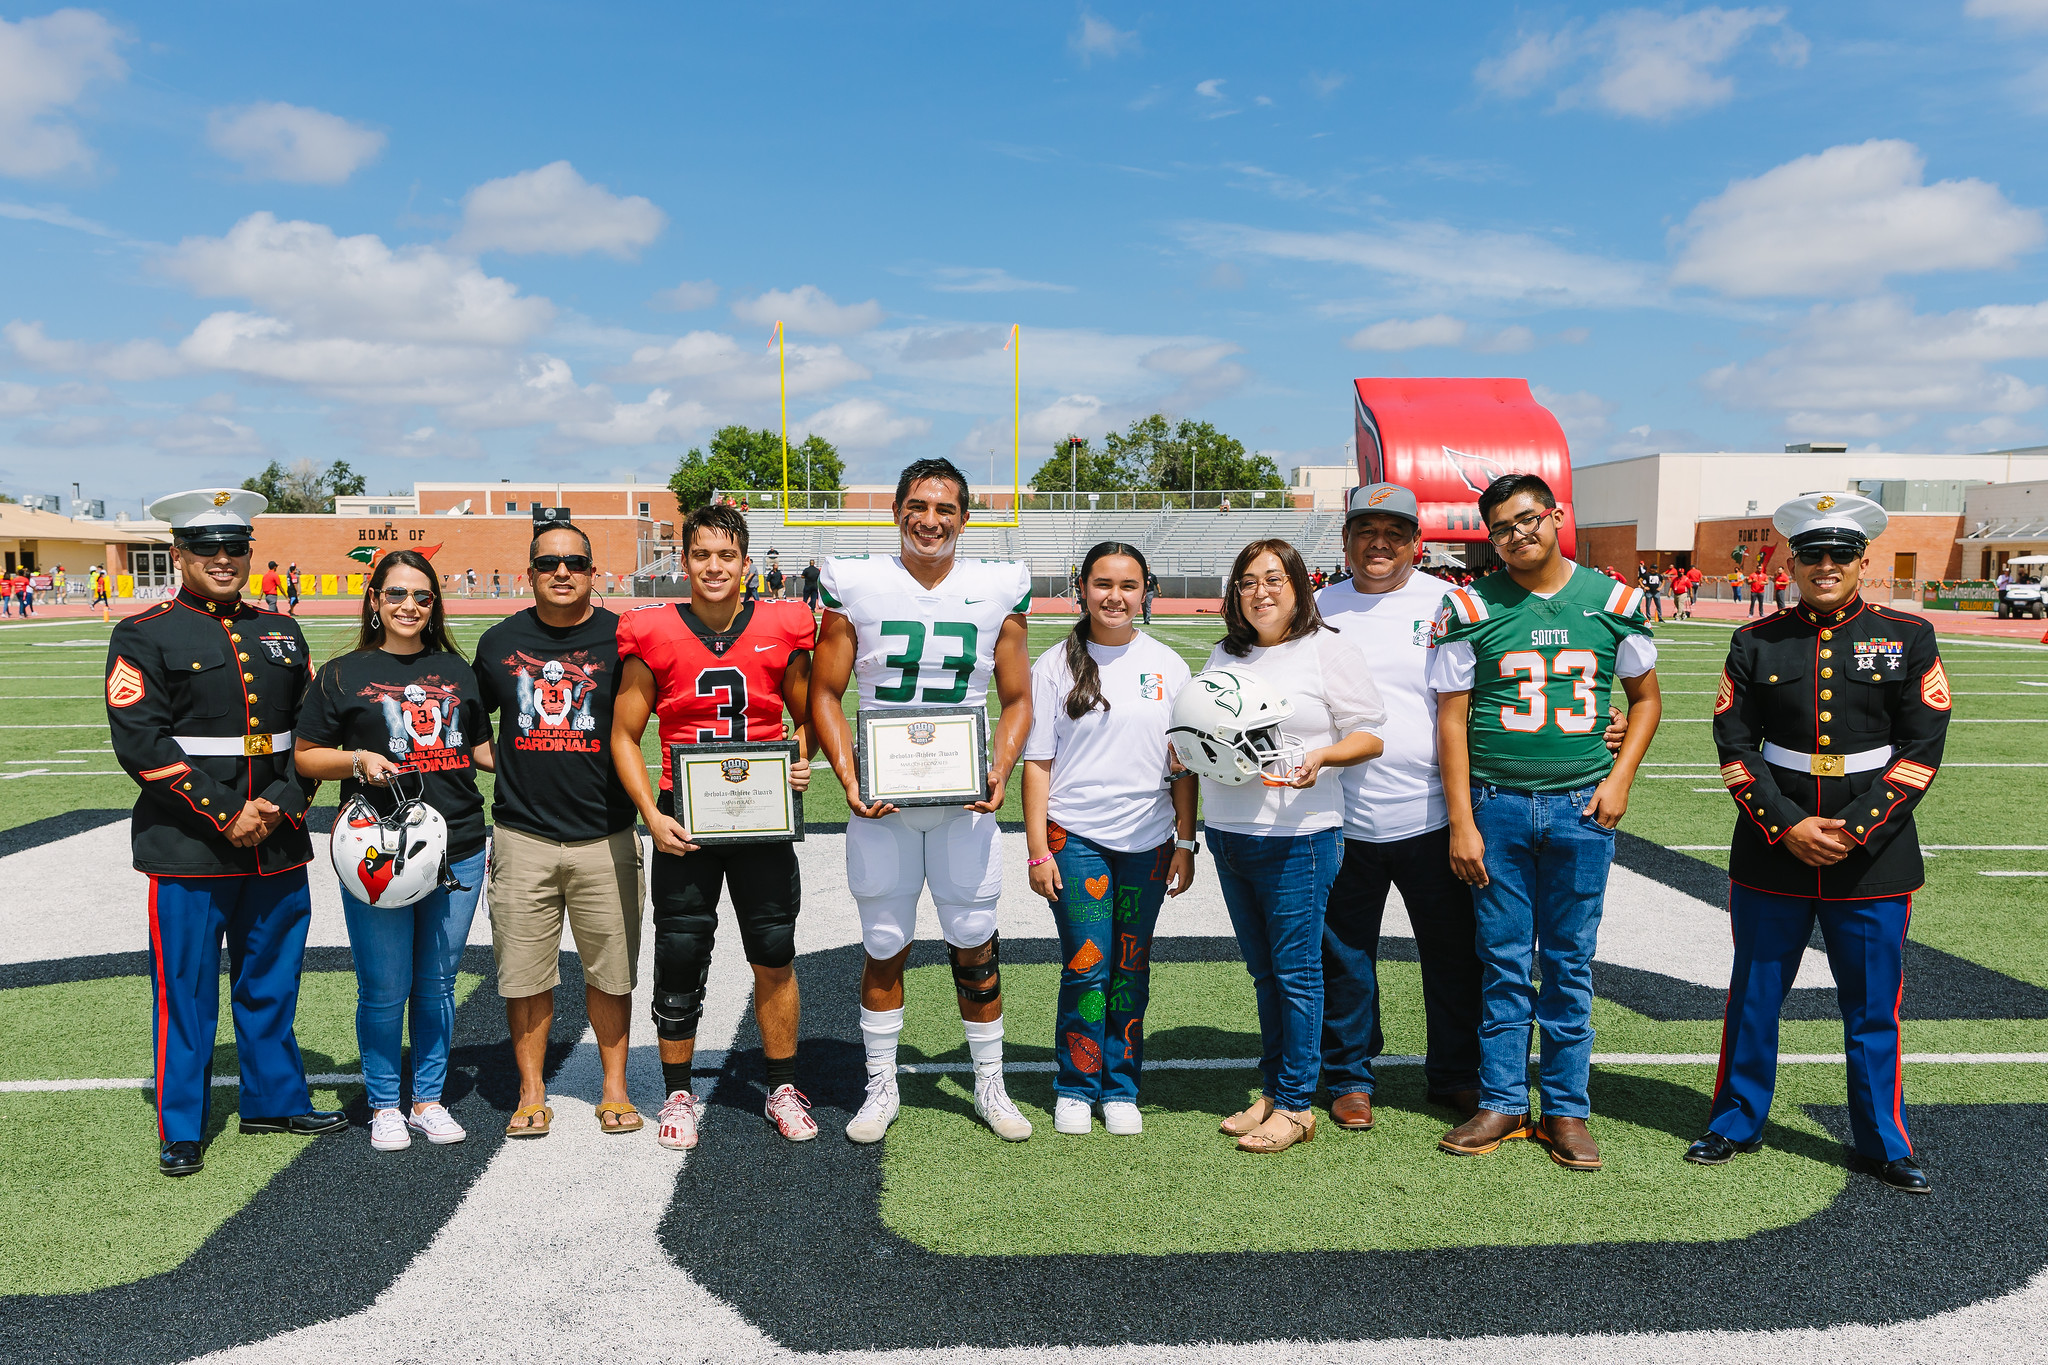 Bird Bowl athletes recognized in the Great American Rivalry Series